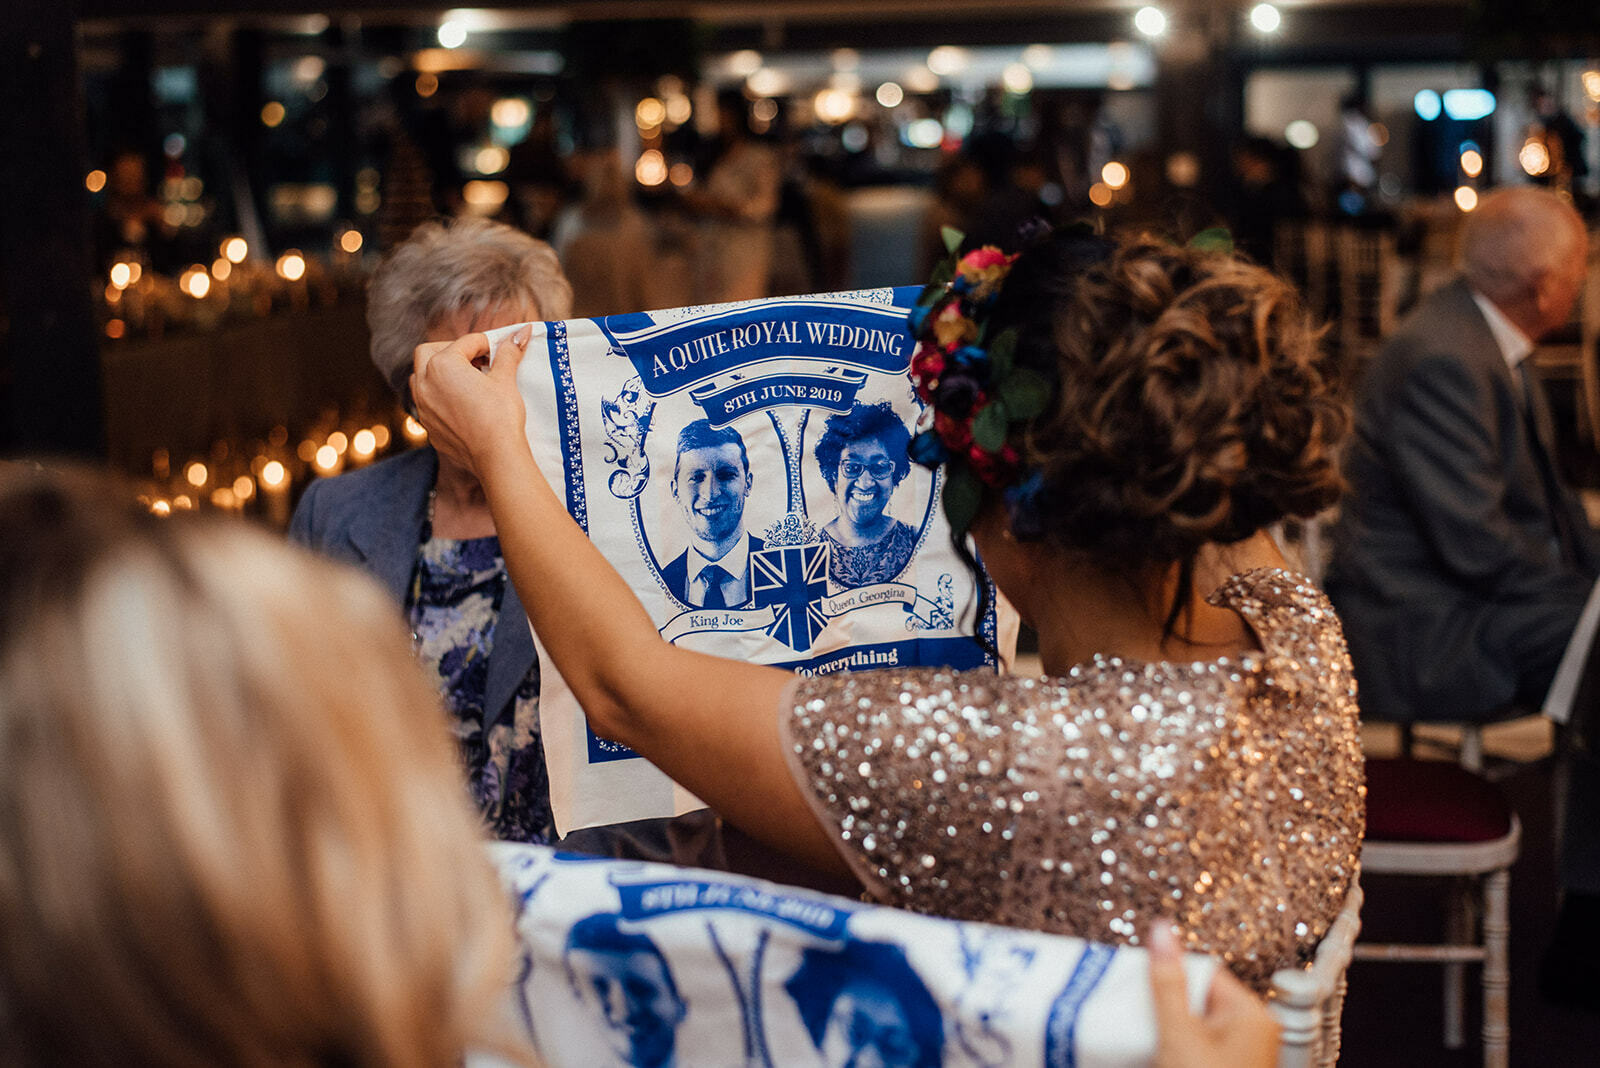 A guest holds up a novelty 'royal wedding' style tea towel